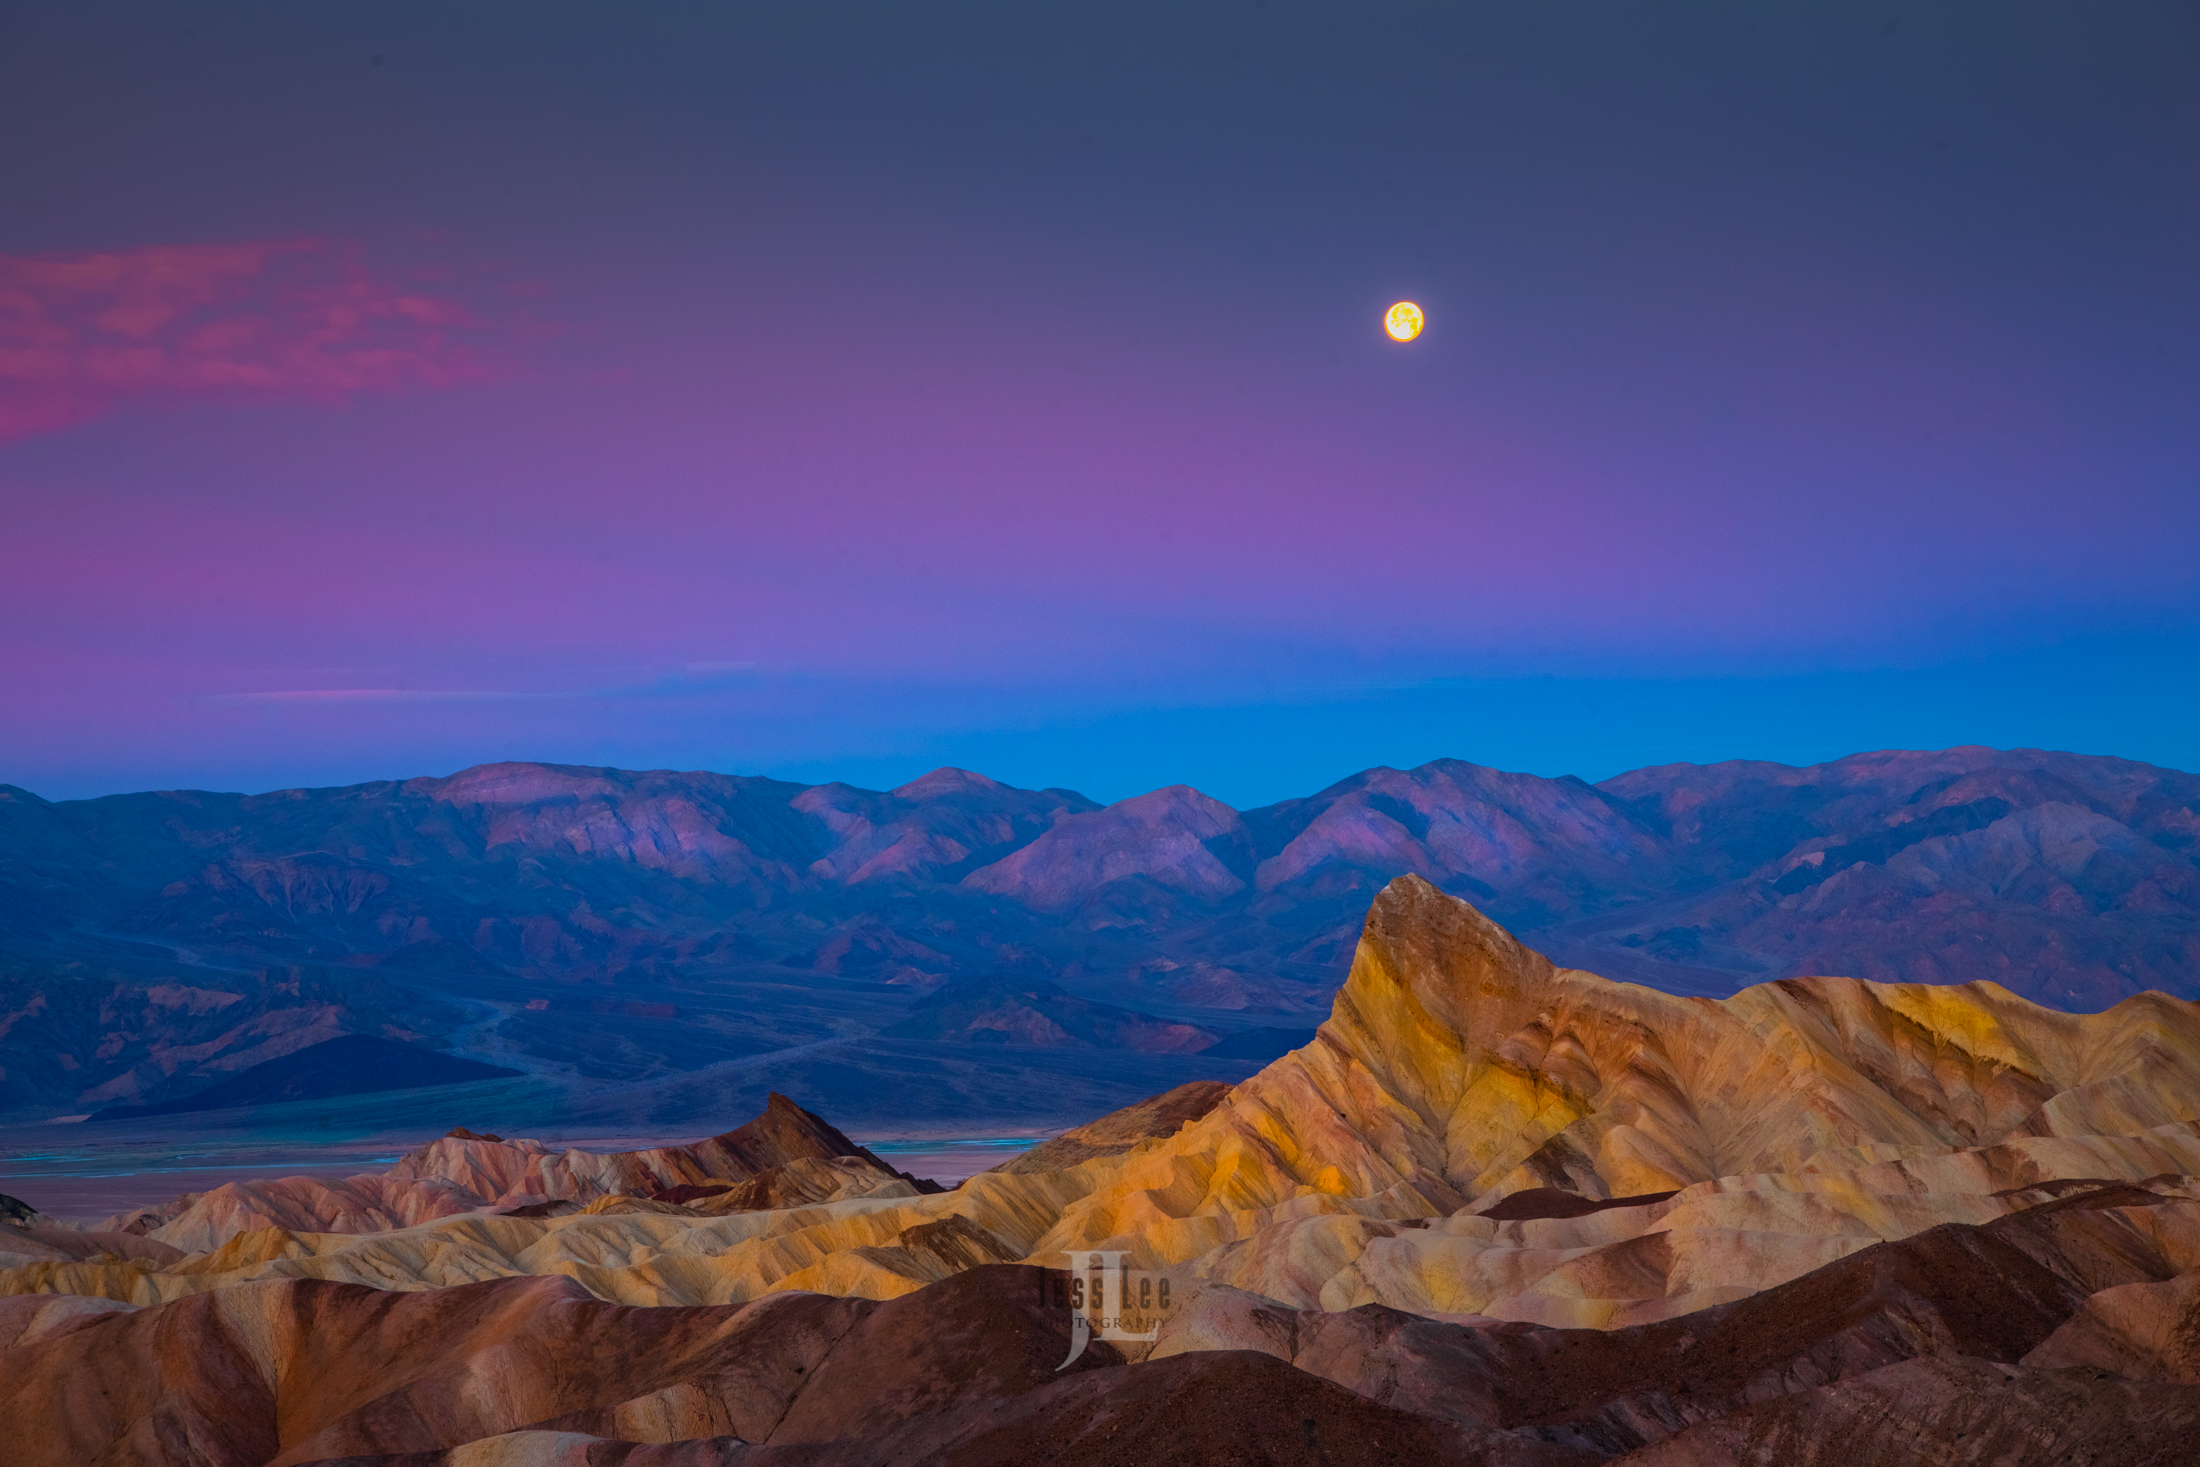 Limited Edition of 50 Exclusive high-resolution Museum Quality Fine Art Prints of a Alpen Glow Moon Photos Copyright © Jess...